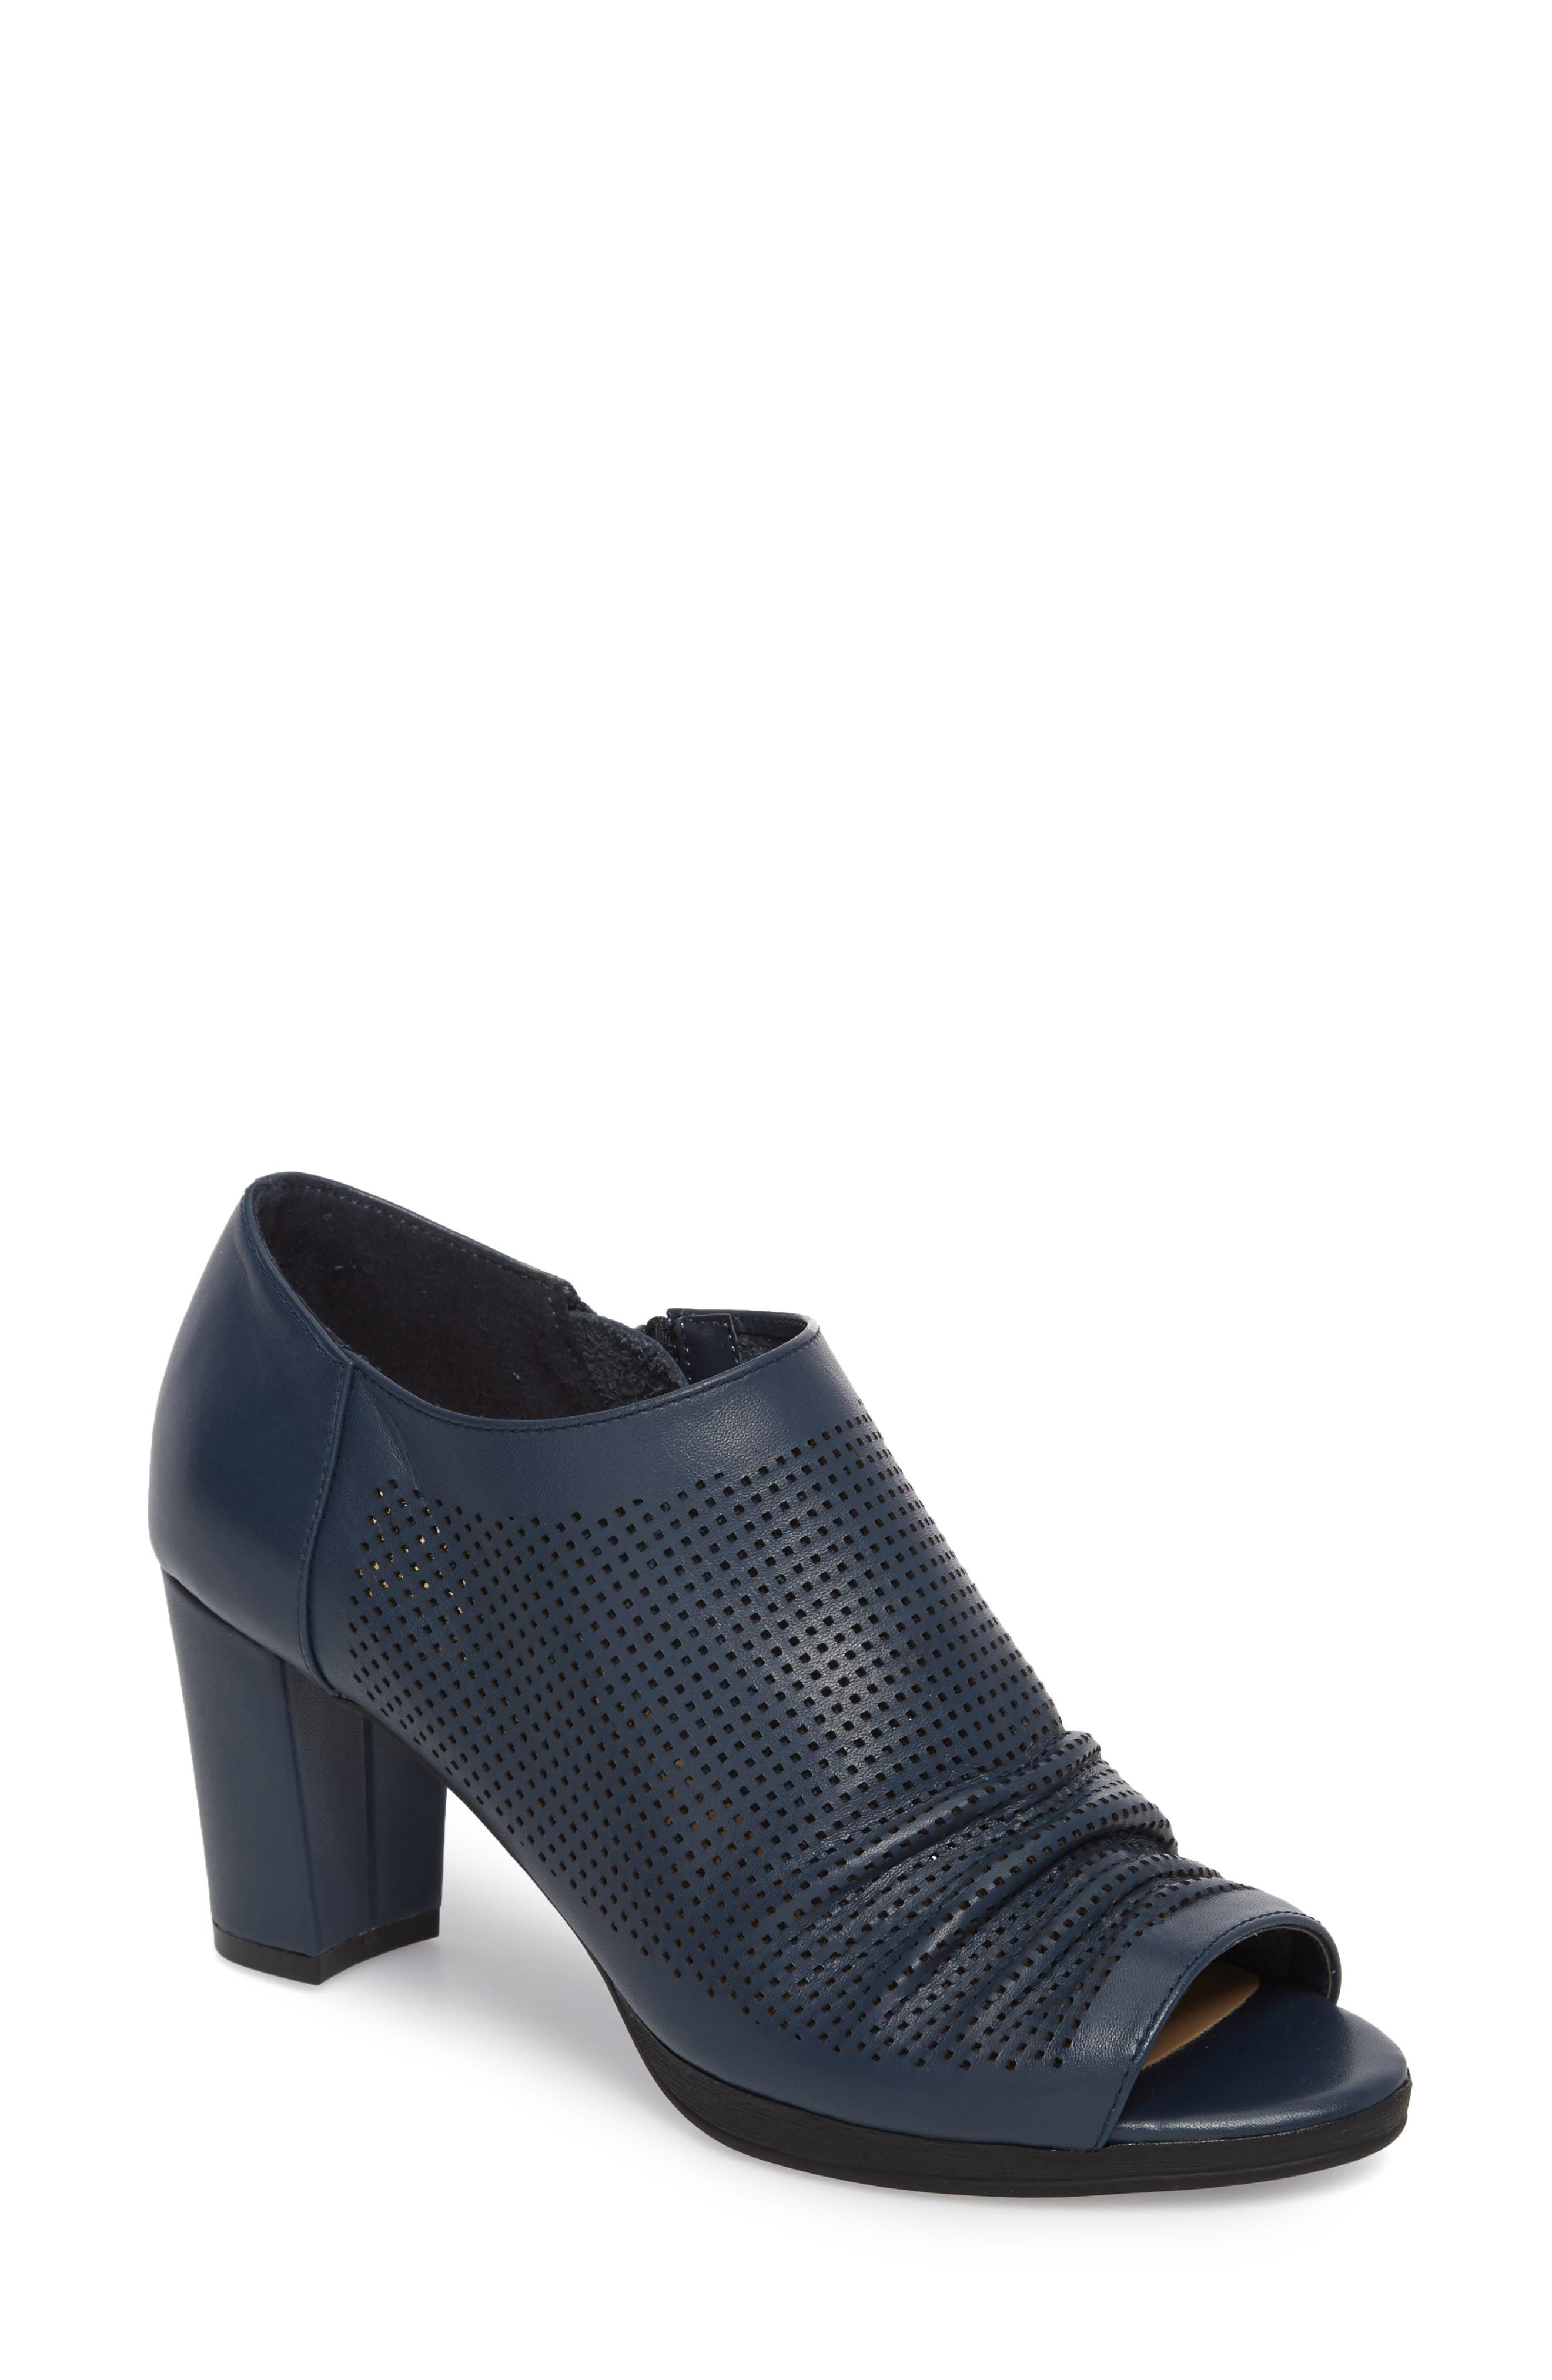 Liza Open Toe Bootie,                             Main thumbnail 1, color,                             Navy Leather